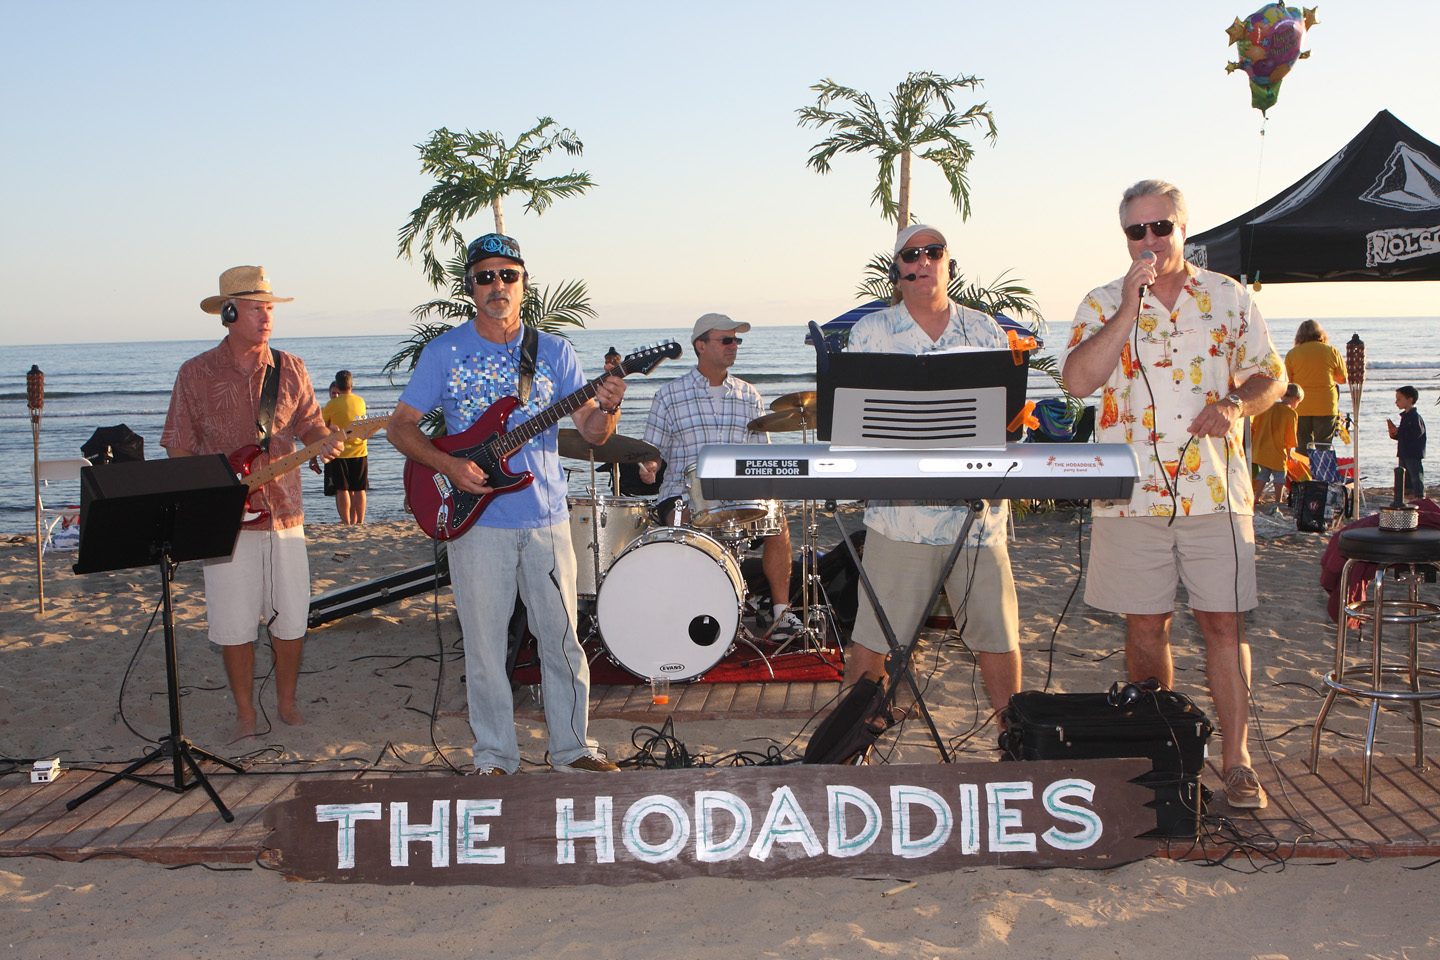 The Hodaddies